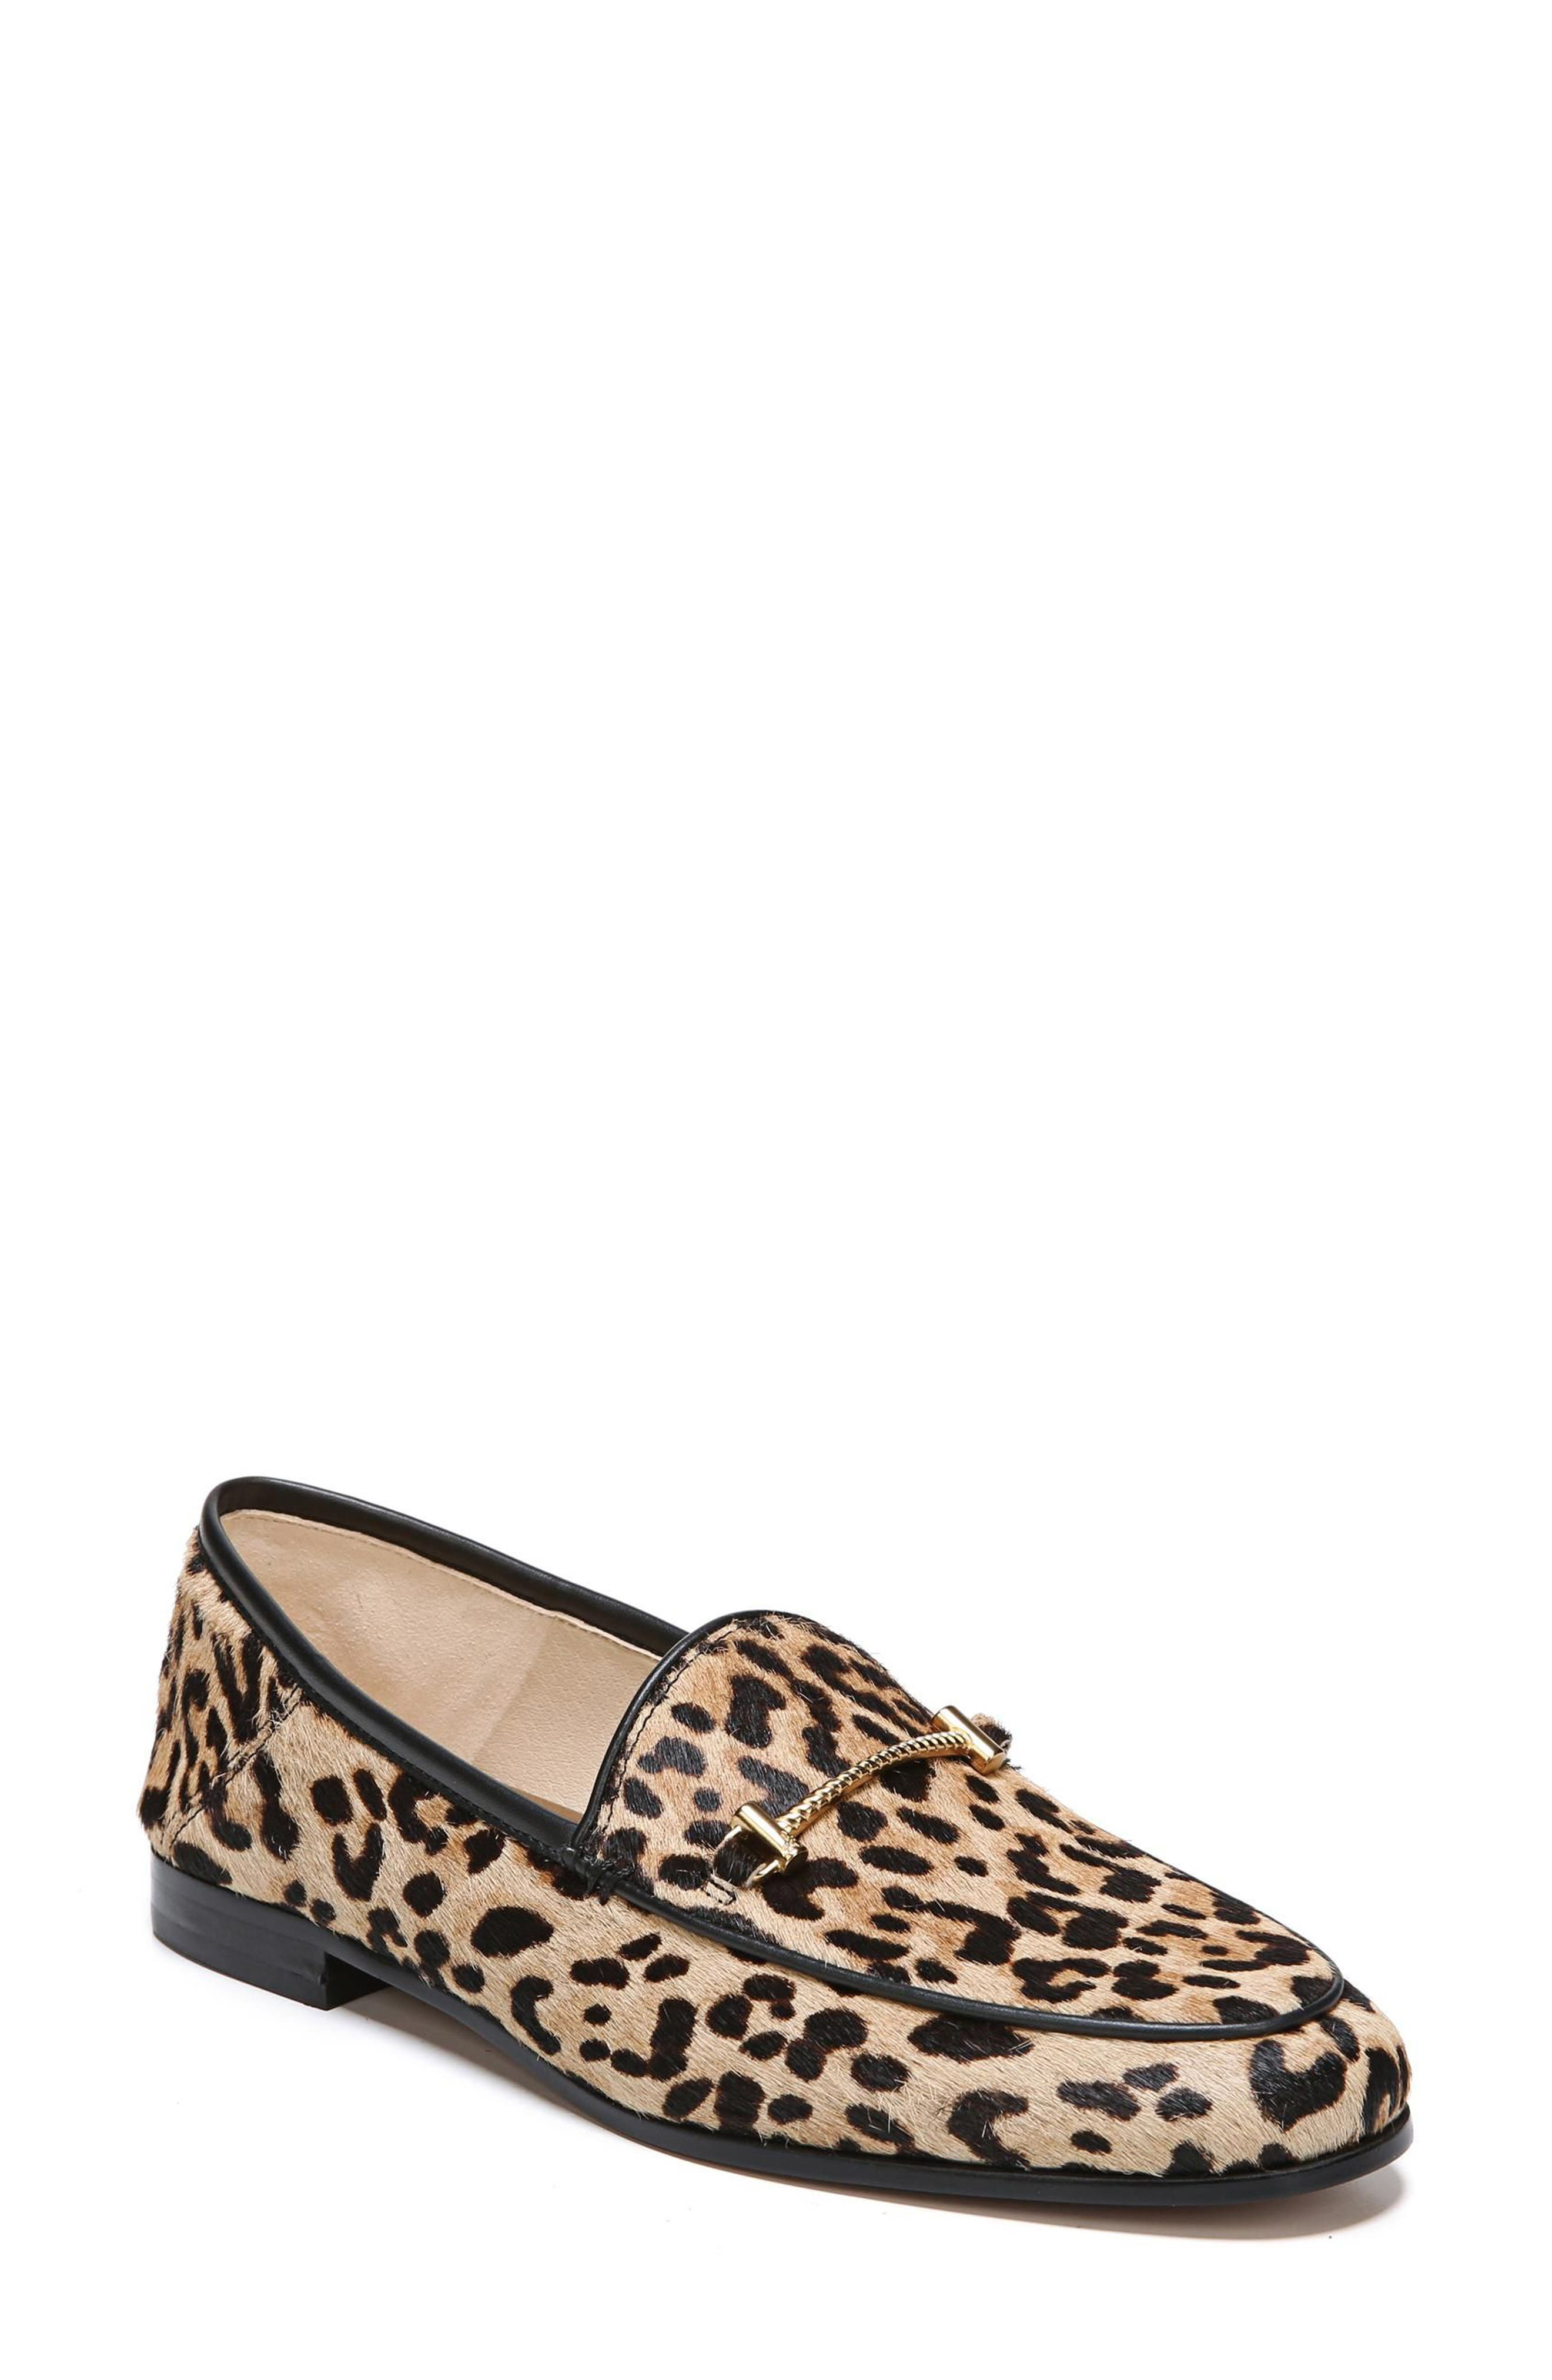 Lior Loafer,                             Main thumbnail 1, color,                             Sand Leopard Calf Hair